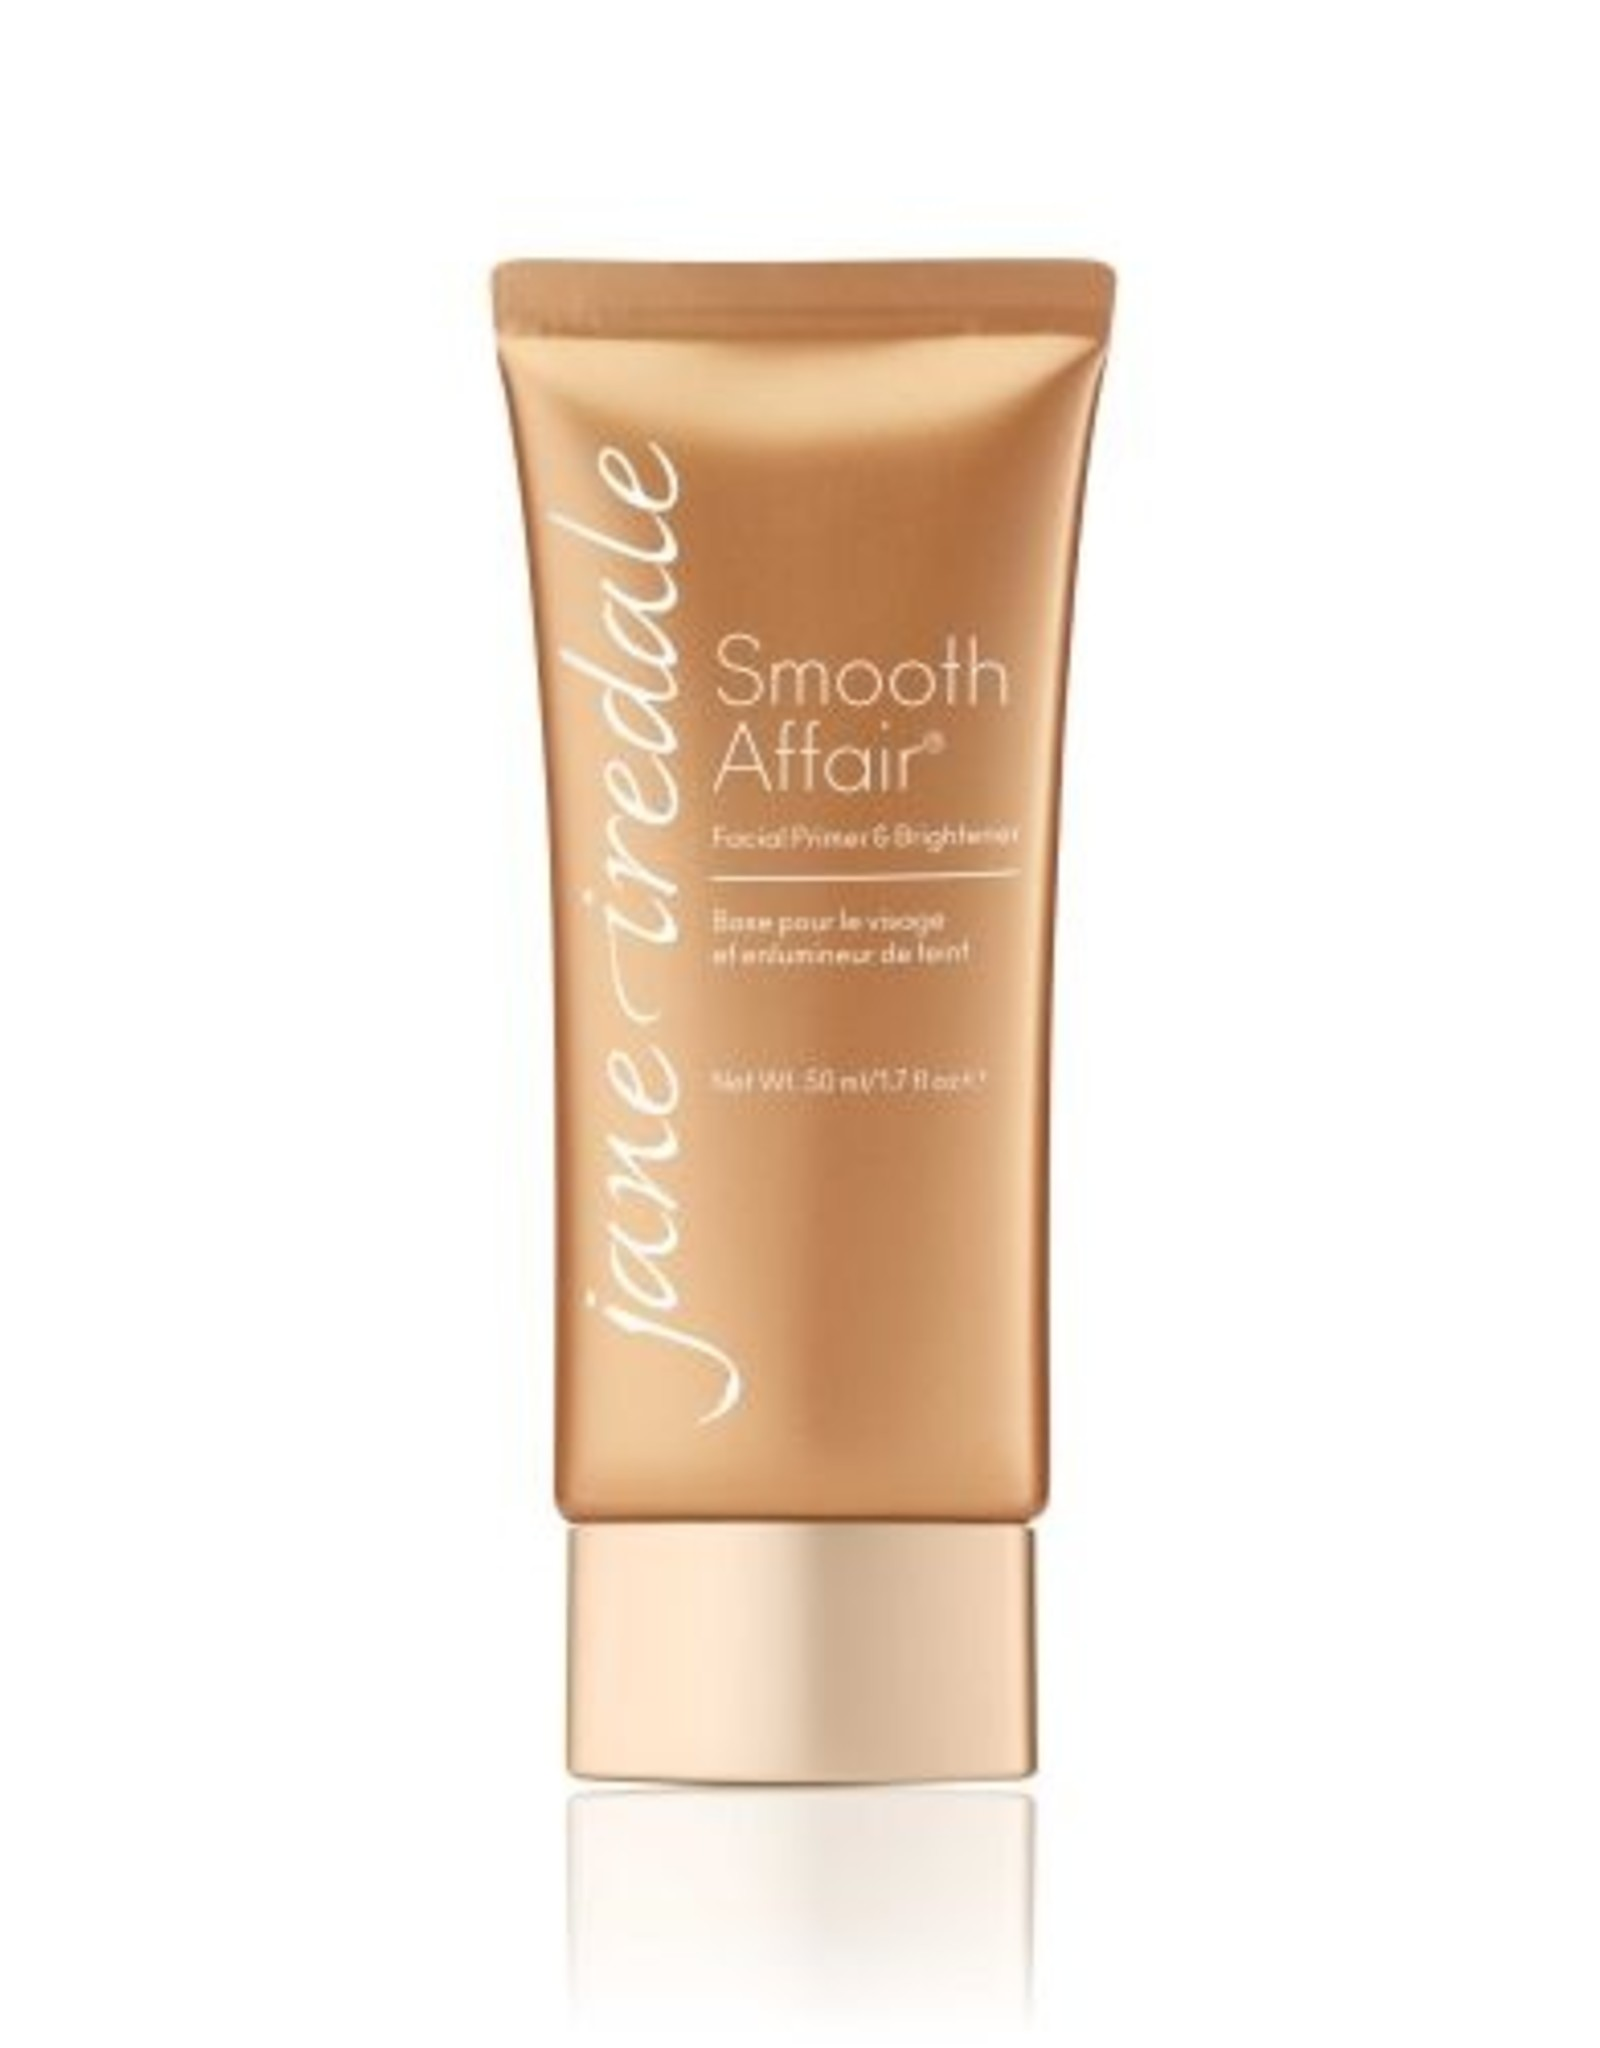 Jane Iredale Smooth Affair Primer